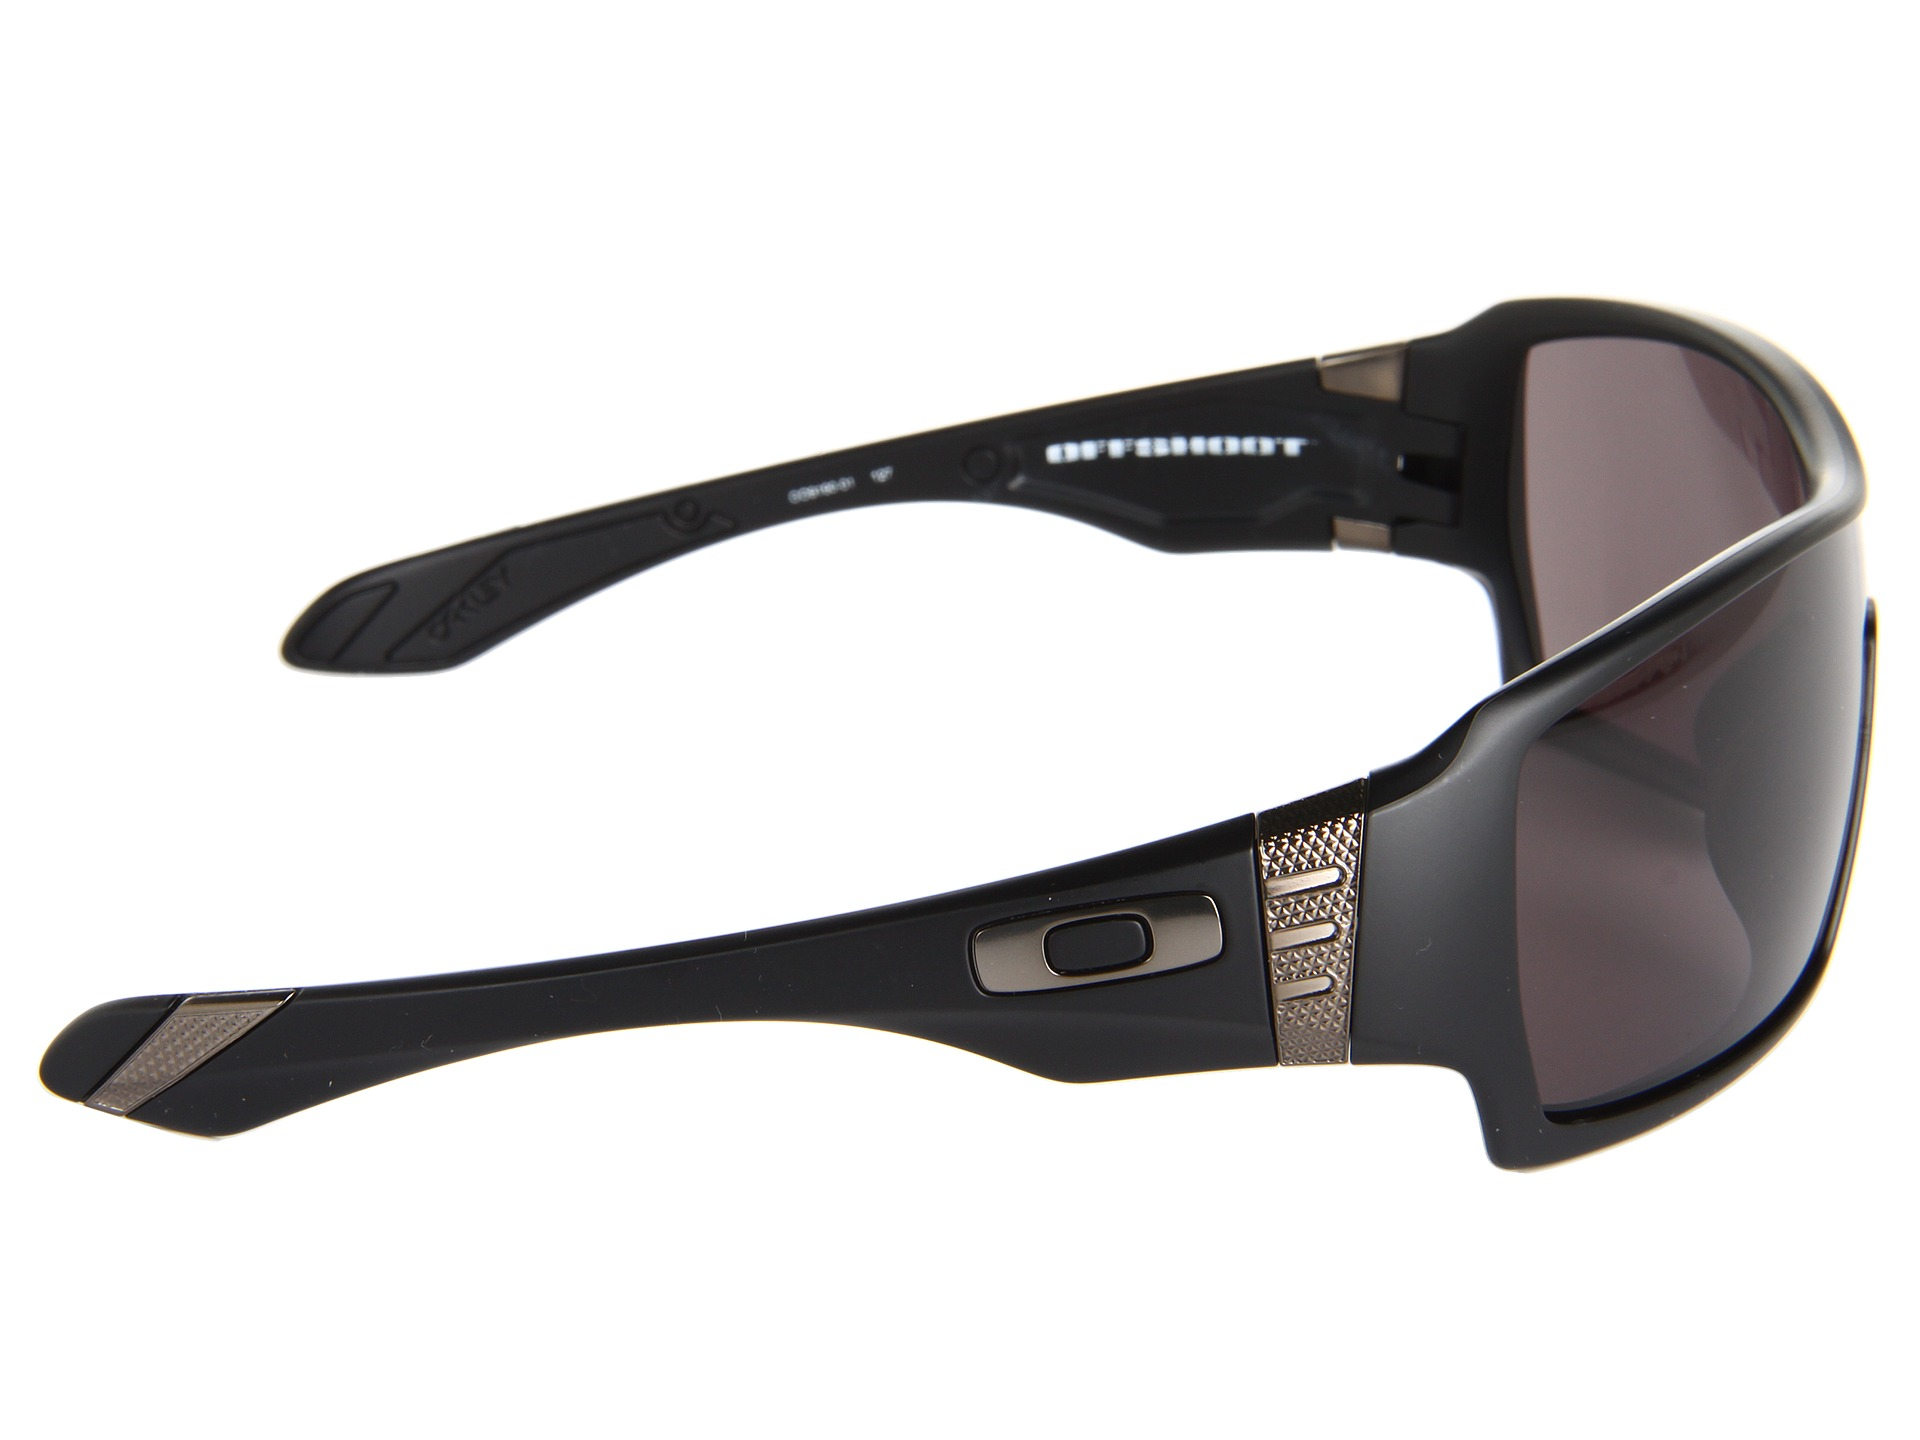 98f439adfc Oakley Offshoot Reviews « Heritage Malta